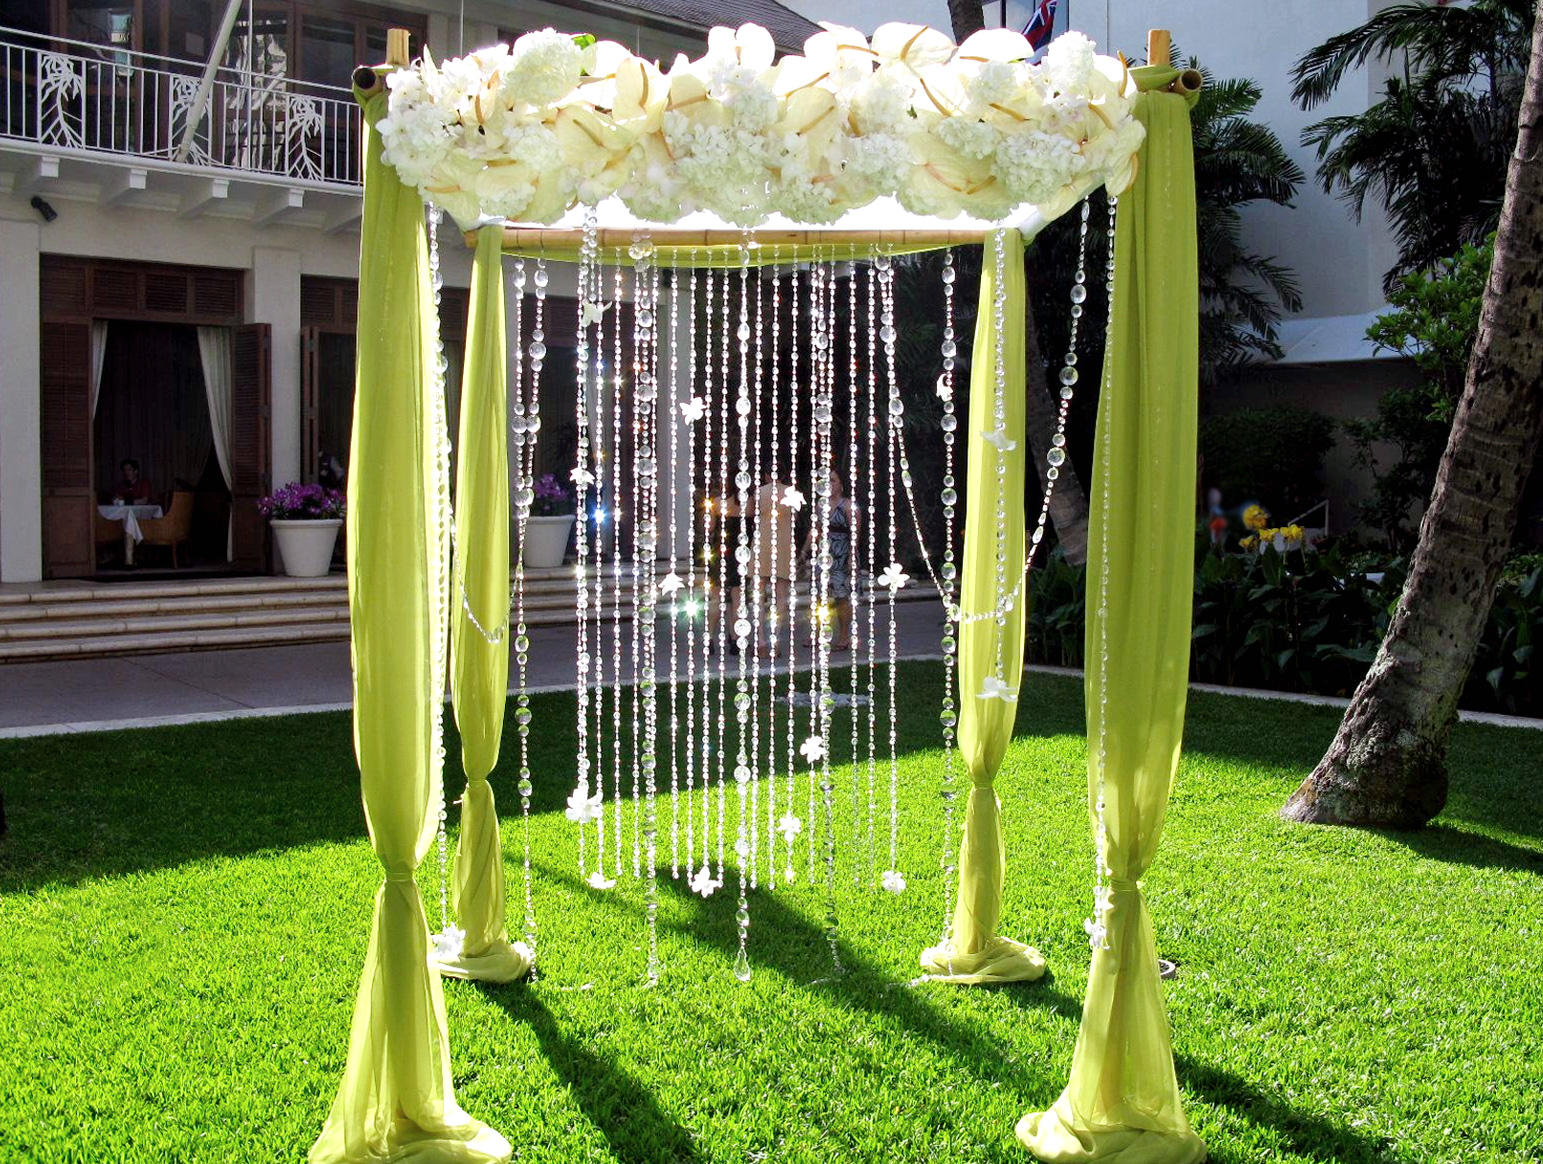 Wedding arches romantic decoration for Arches decoration ideas